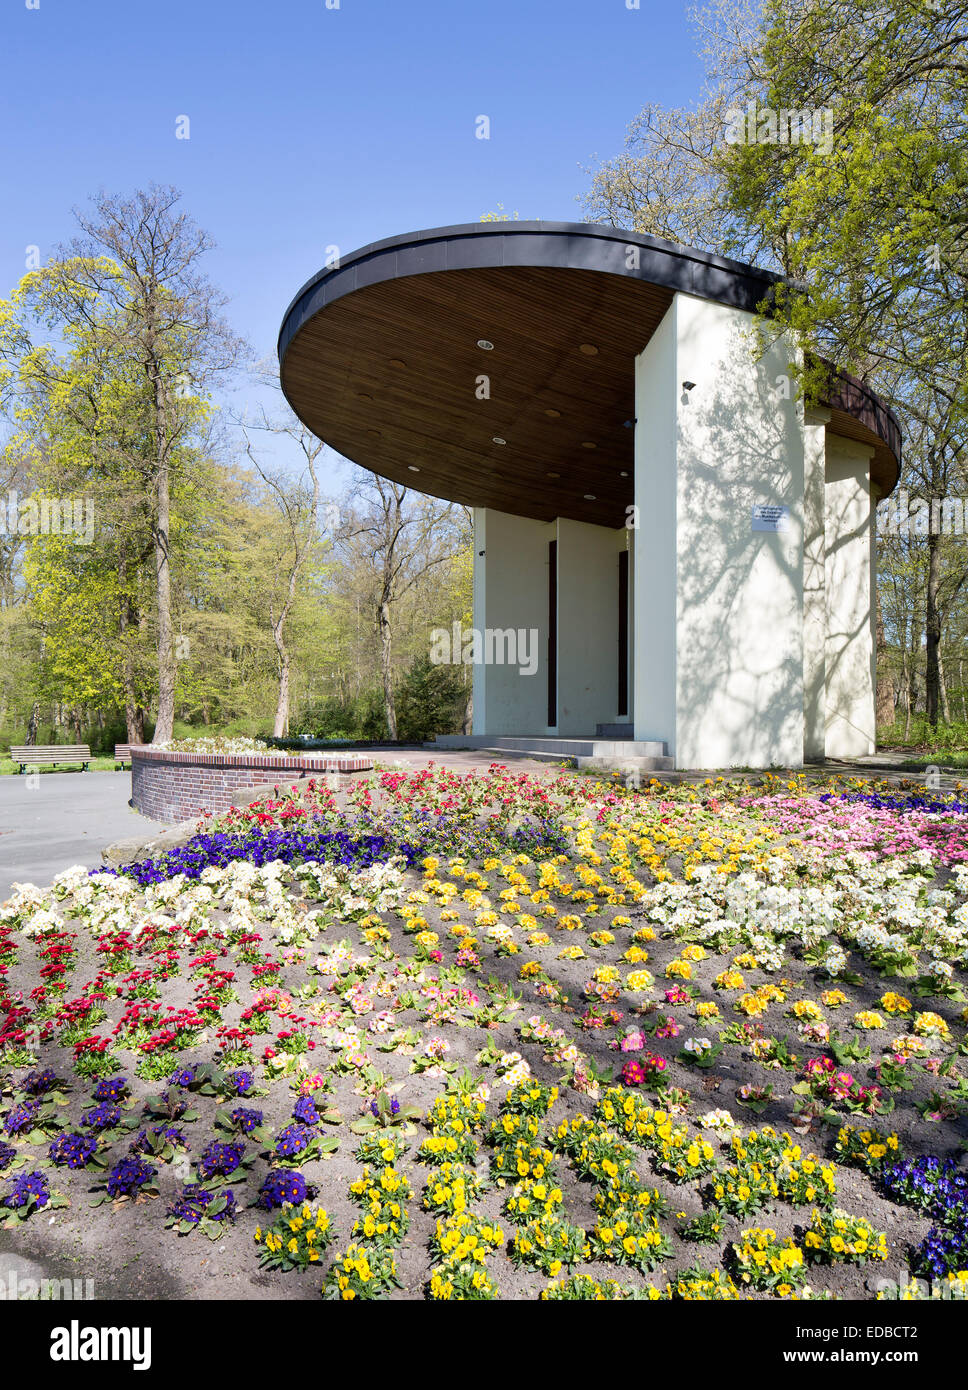 Bandstand in the spa gardens, Wilhelmshaven, Lower Saxony, Germany - Stock Image